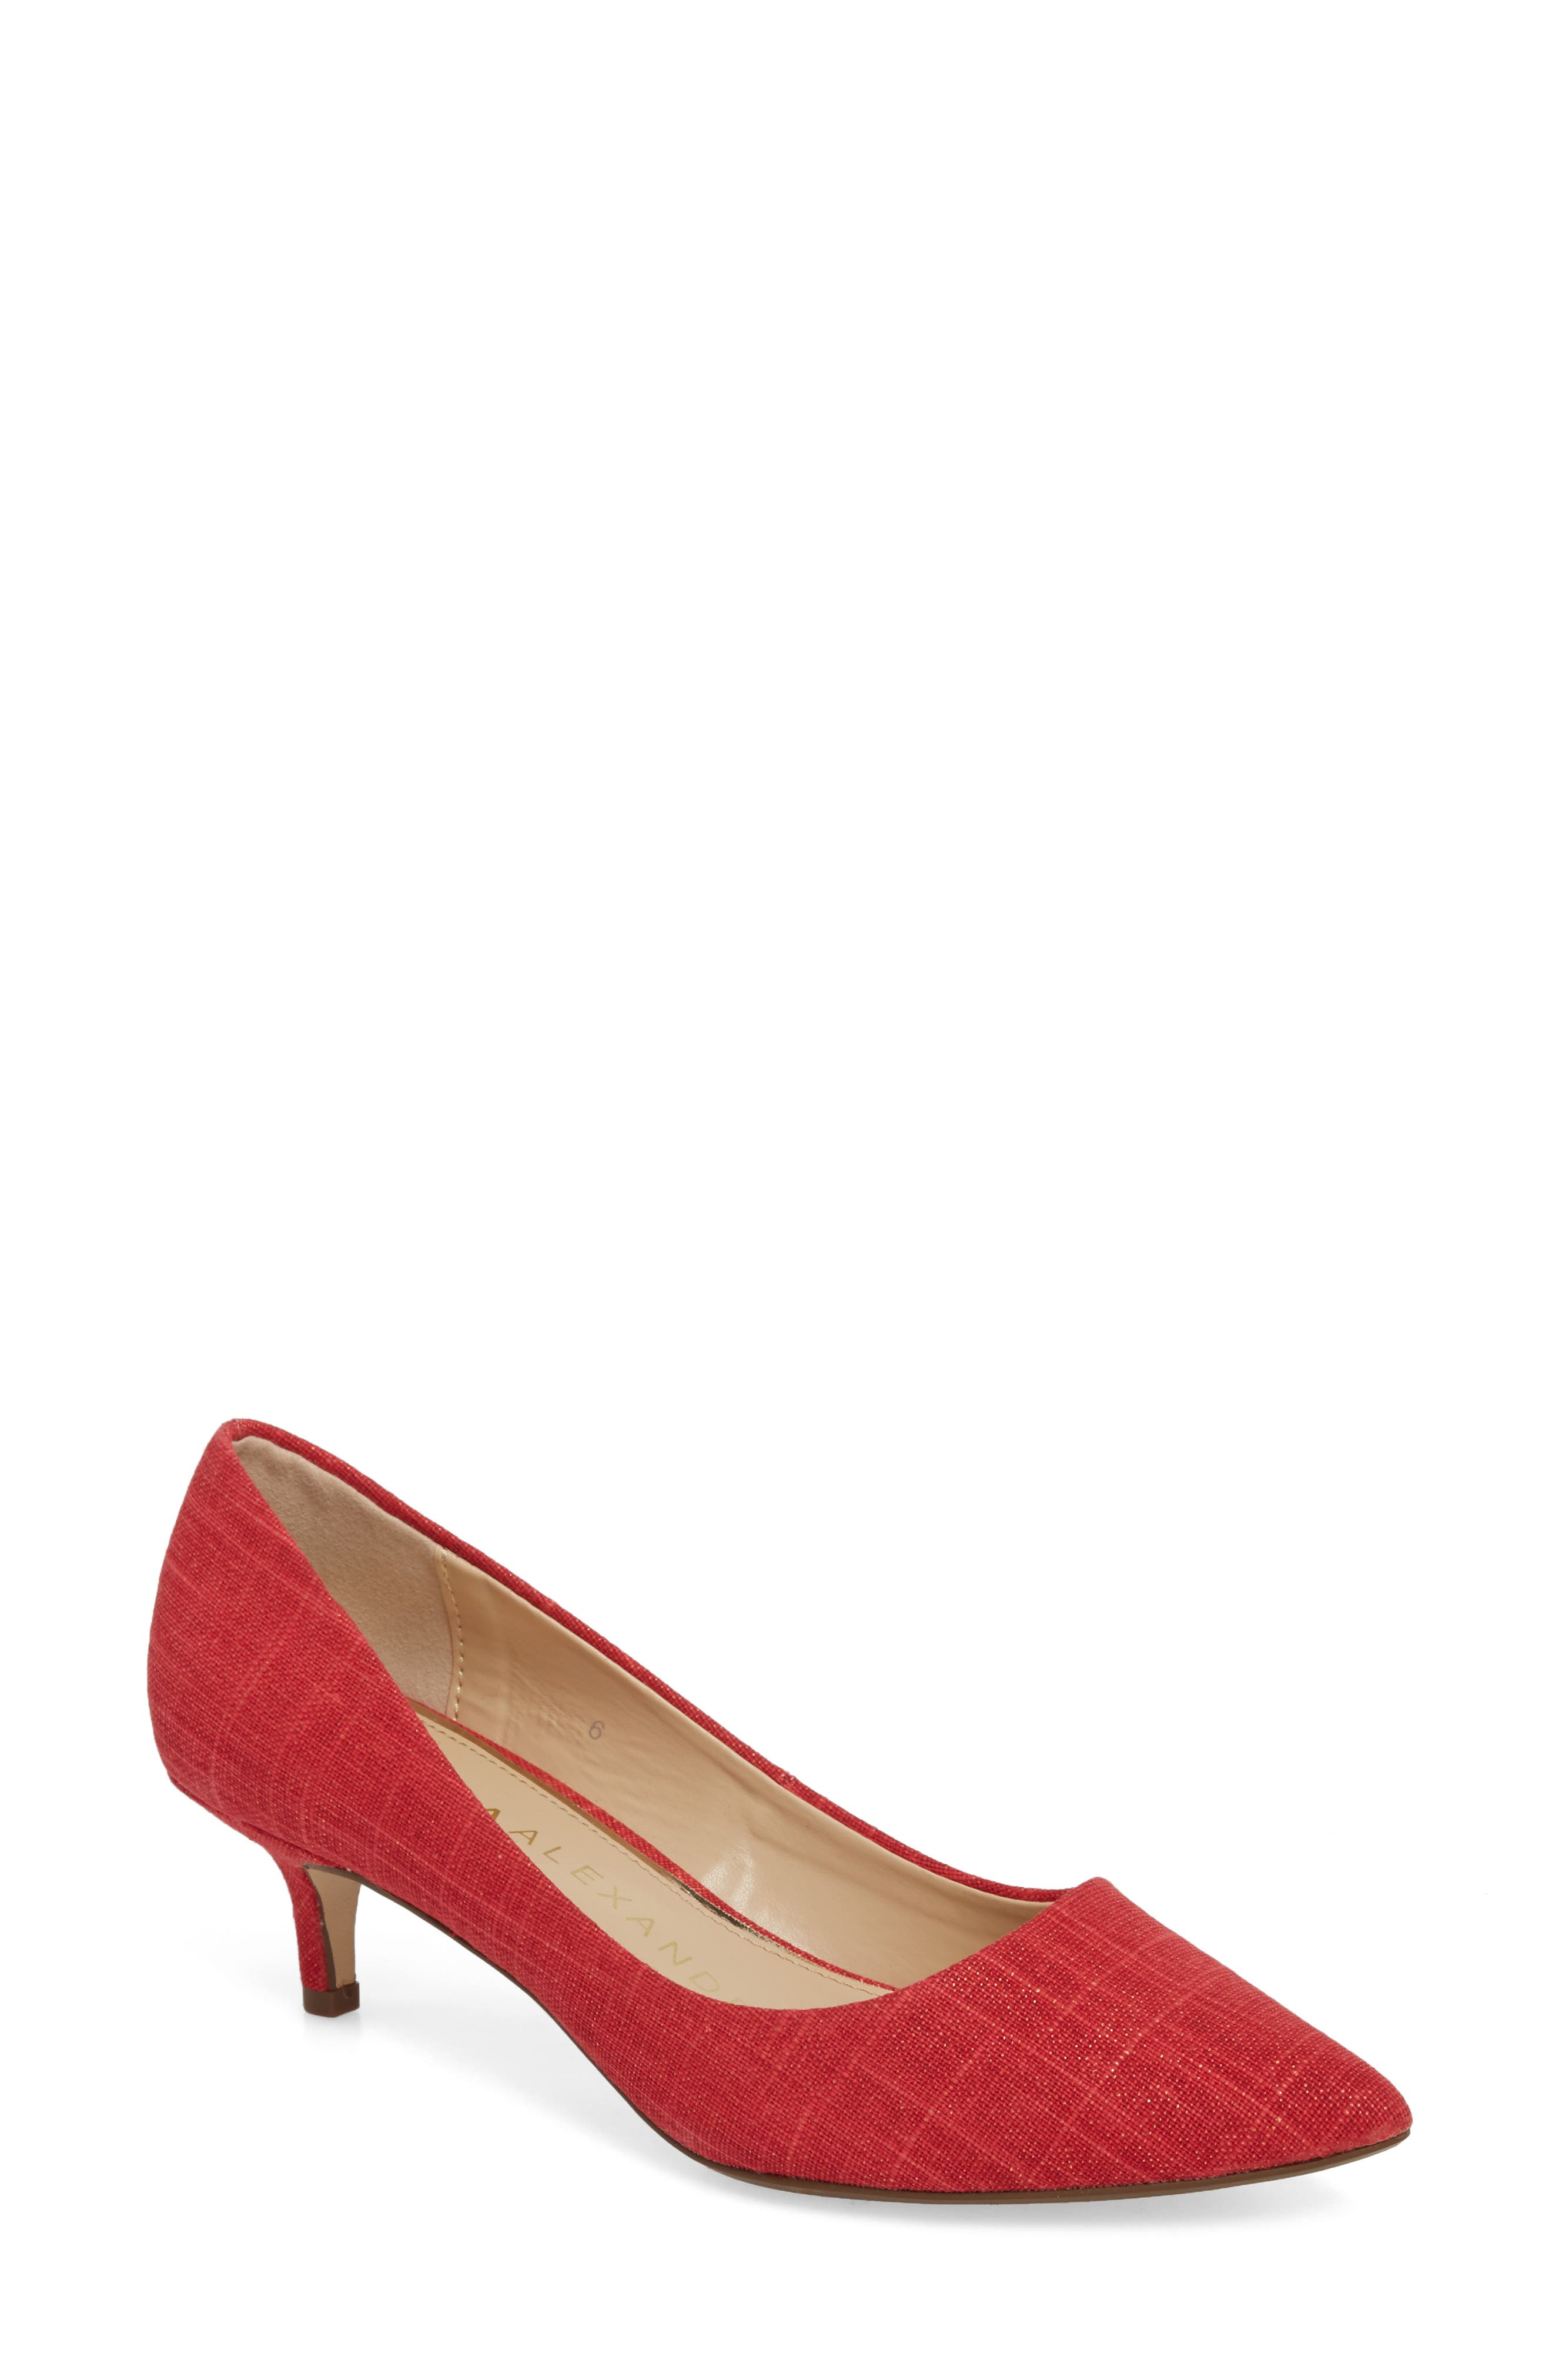 Target Kitten Heel Pump,                         Main,                         color, Red Fabric